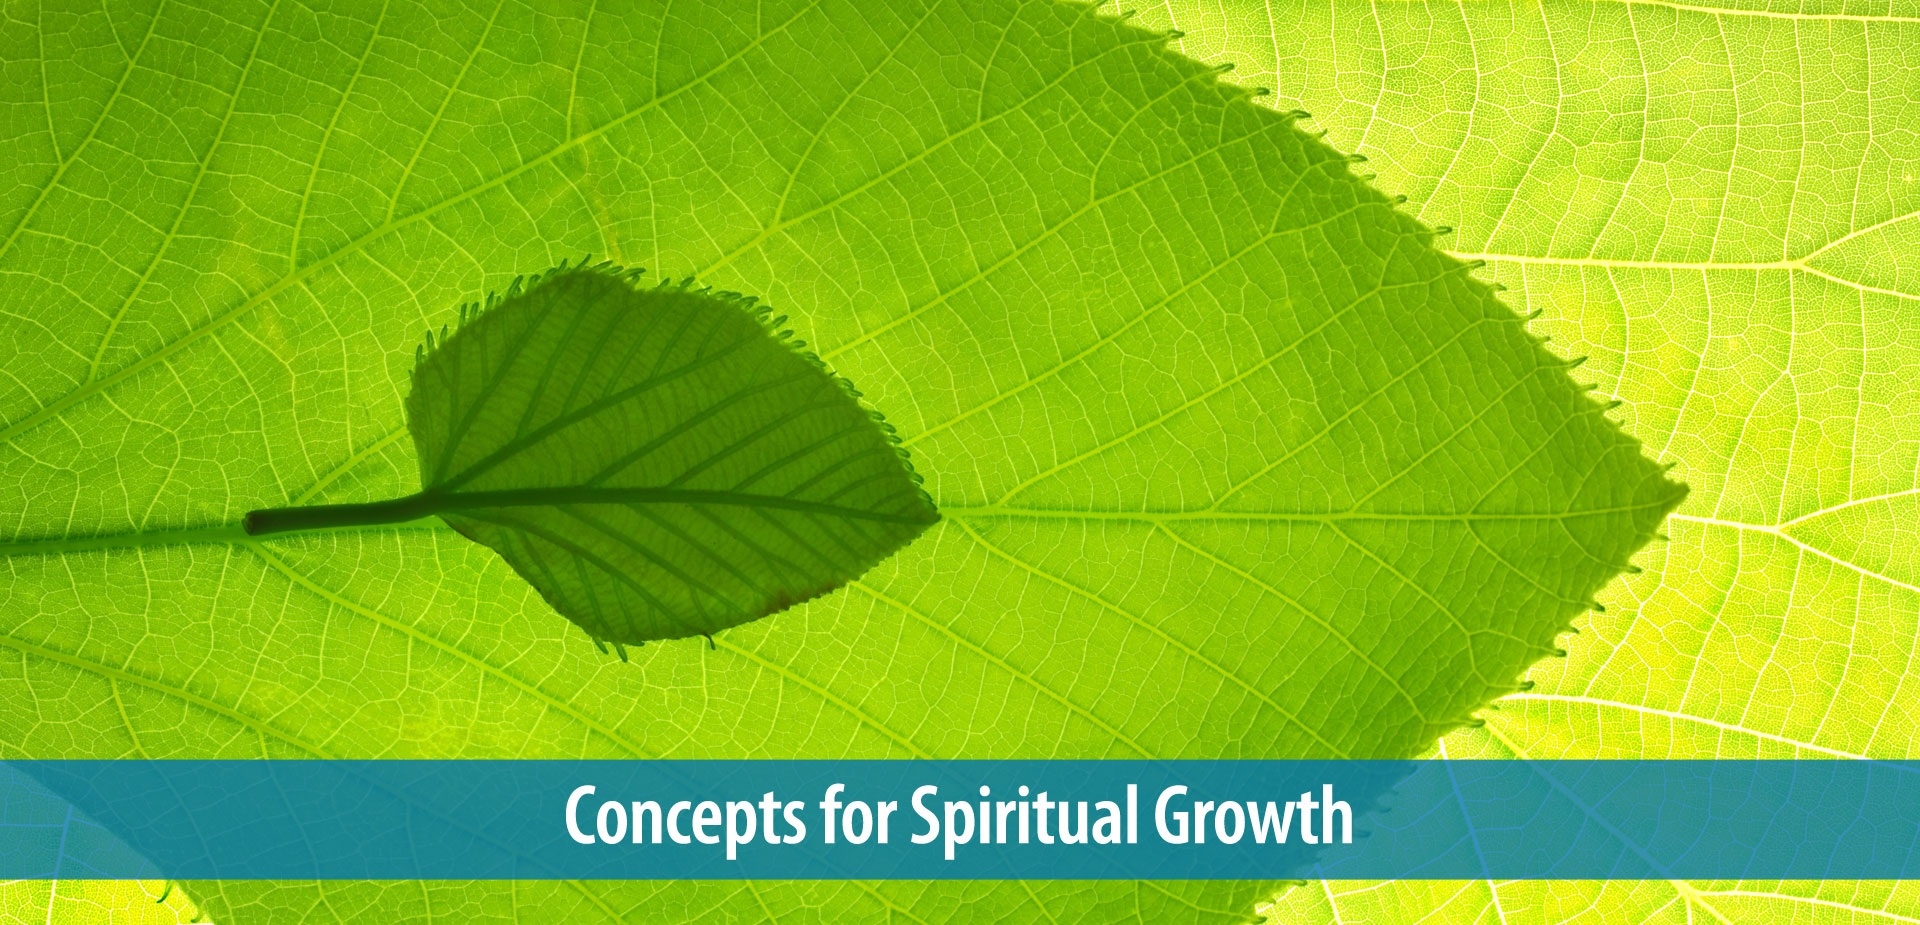 Concepts for Spiritual Growth